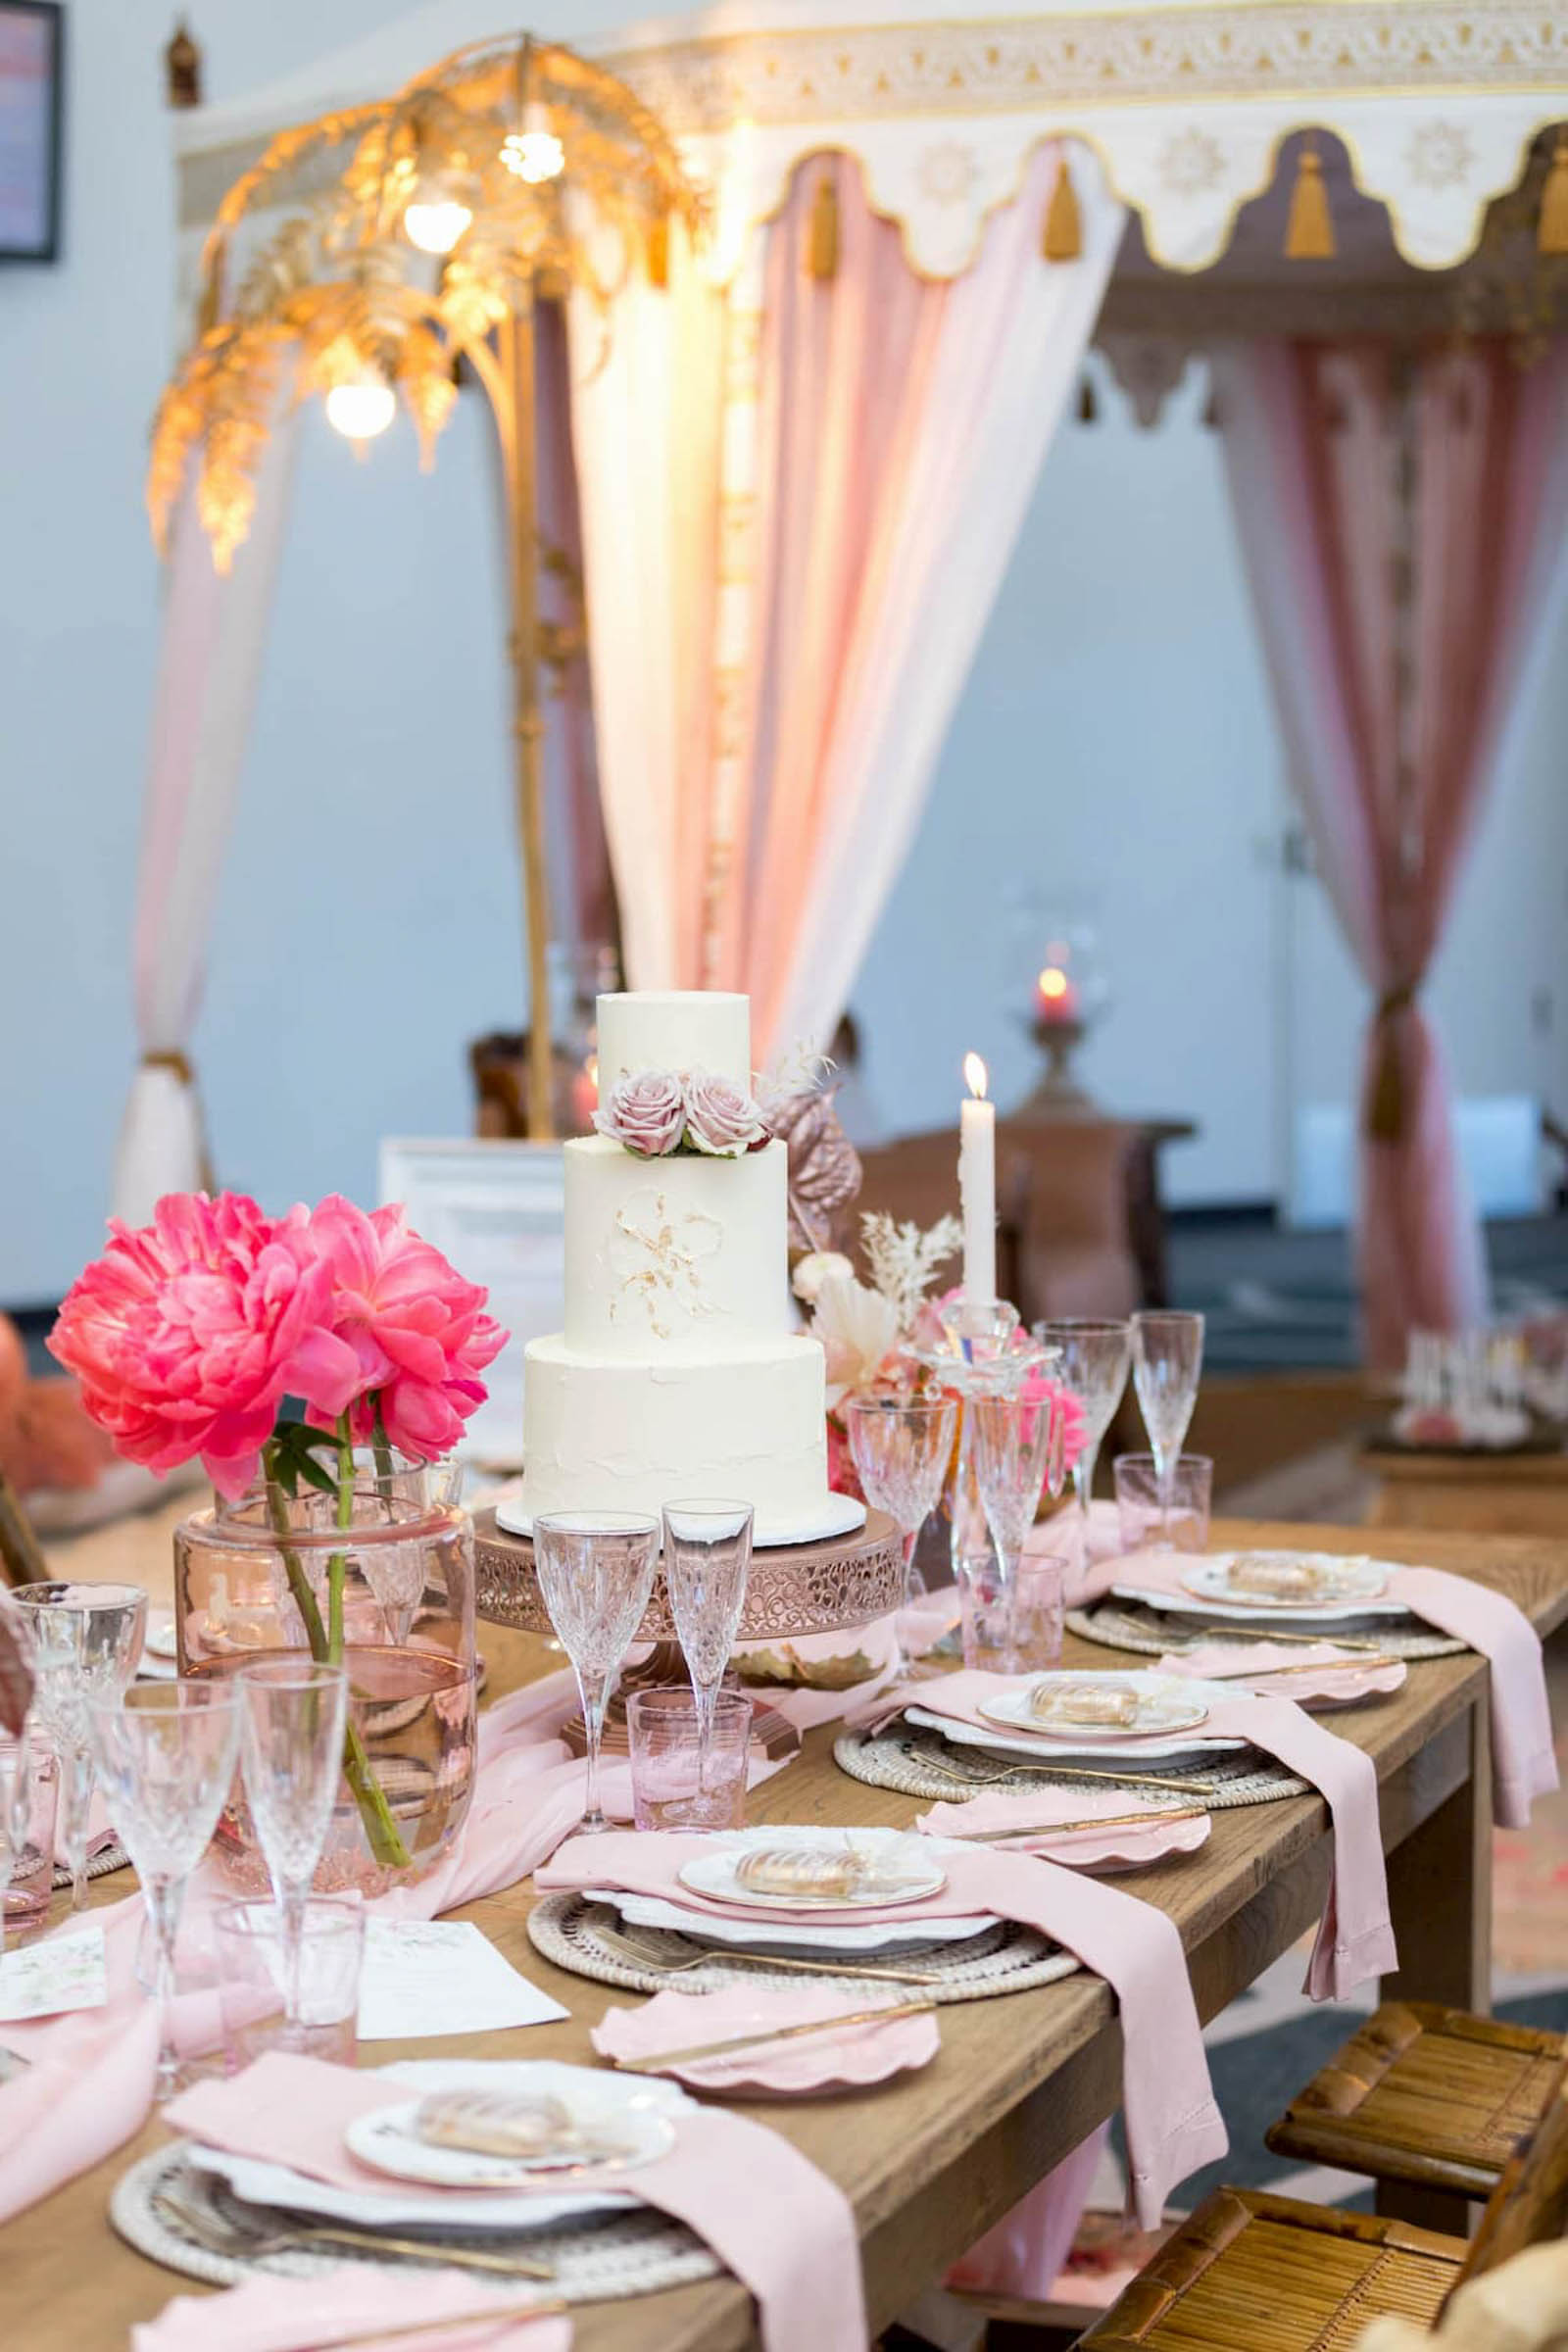 Luxury outdoor picnic setting with 3 tier wedding cake and pink and gold place settings